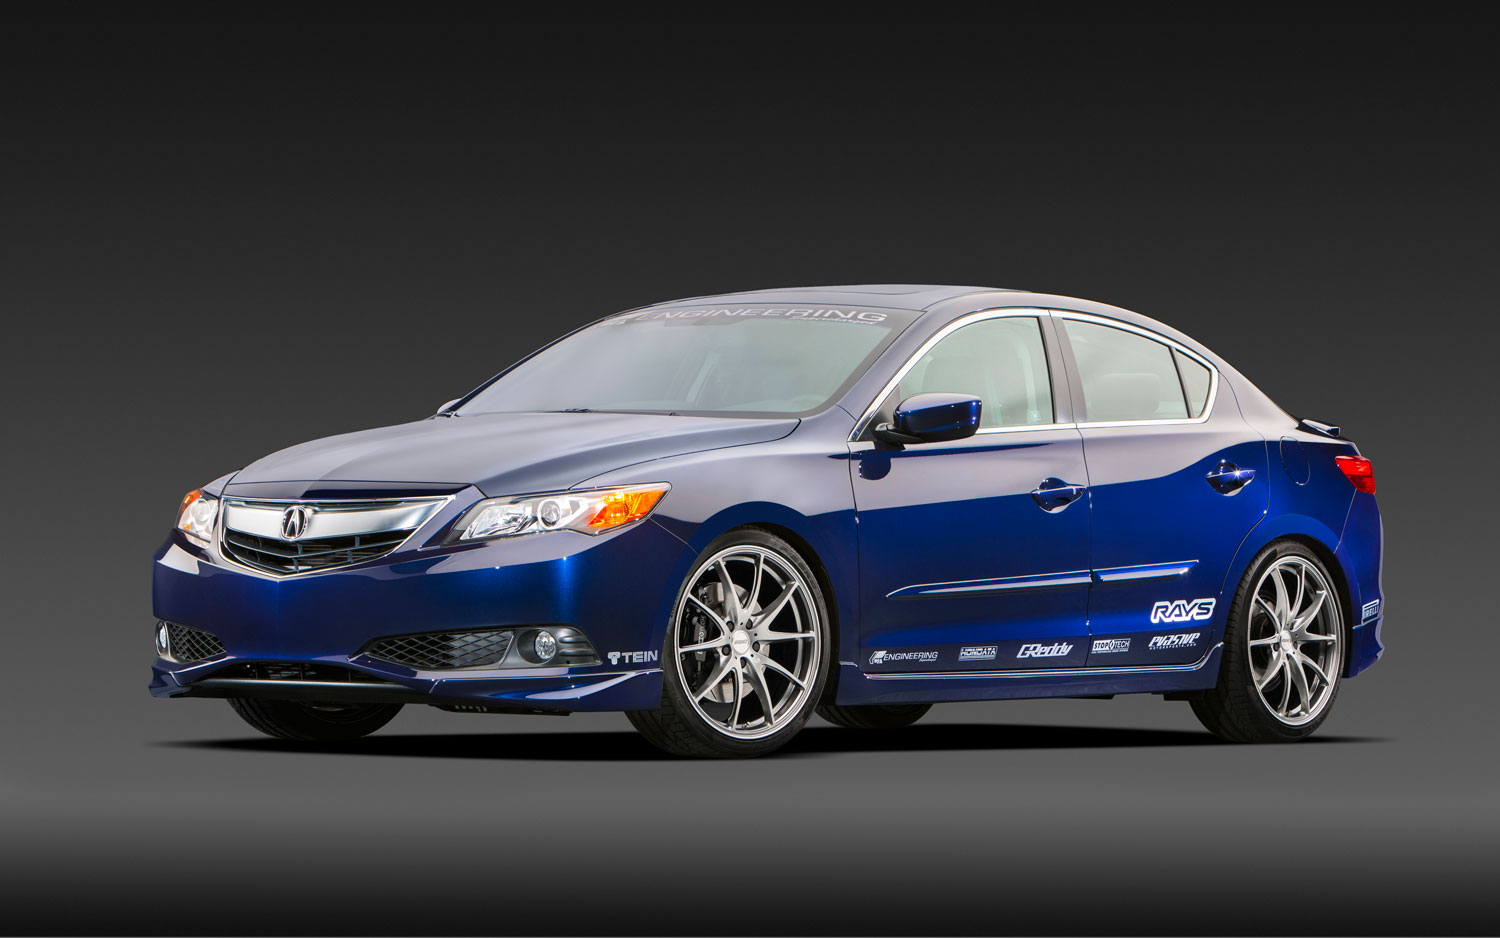 Supercharged 2013 Acura ILX